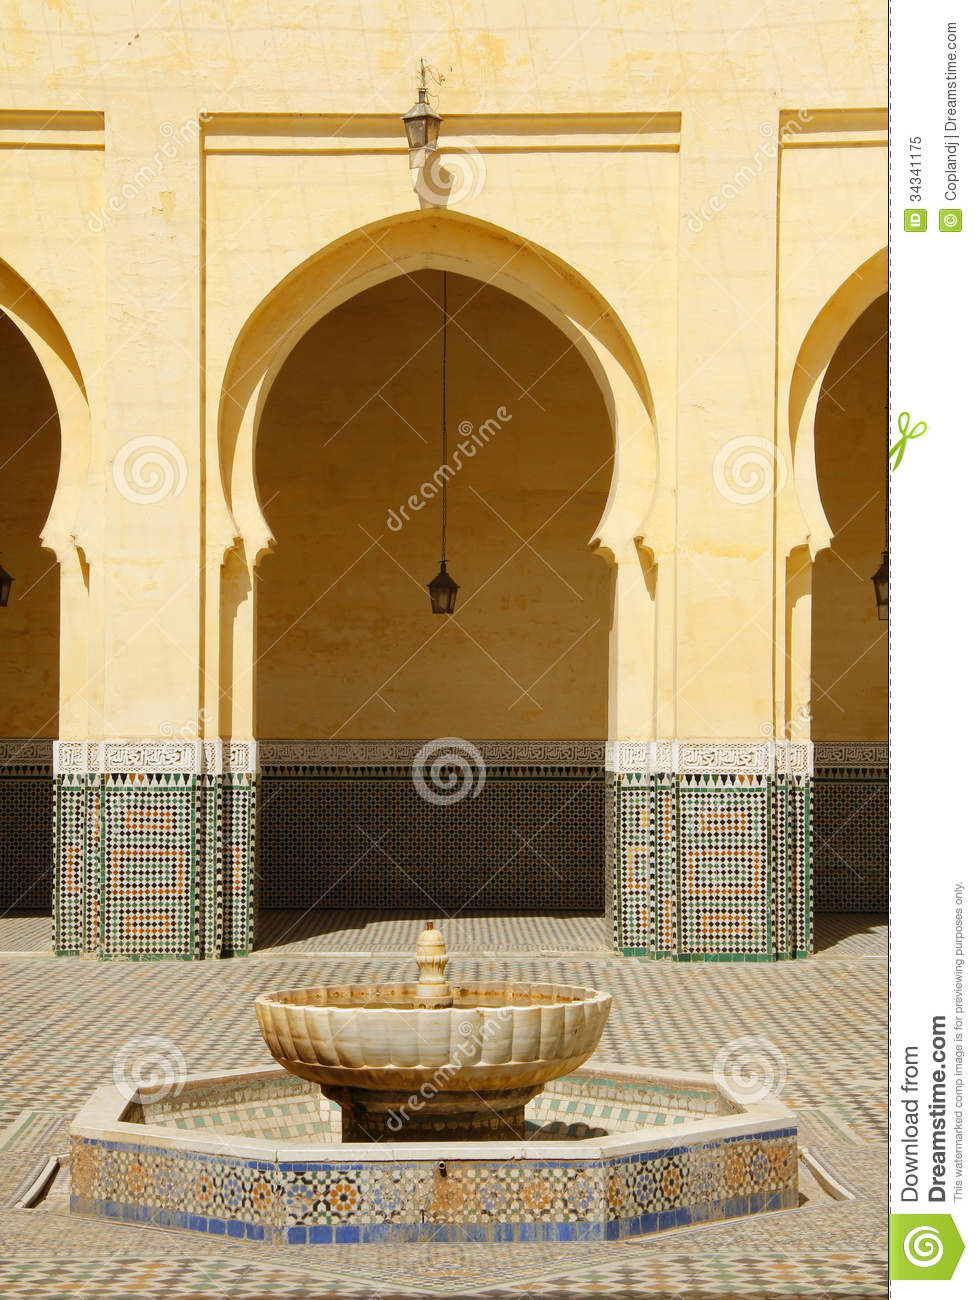 Meknes Morocco  city images : Morocco, Meknes, Islamic Arches And Patio Royalty Free Stock Photo ...